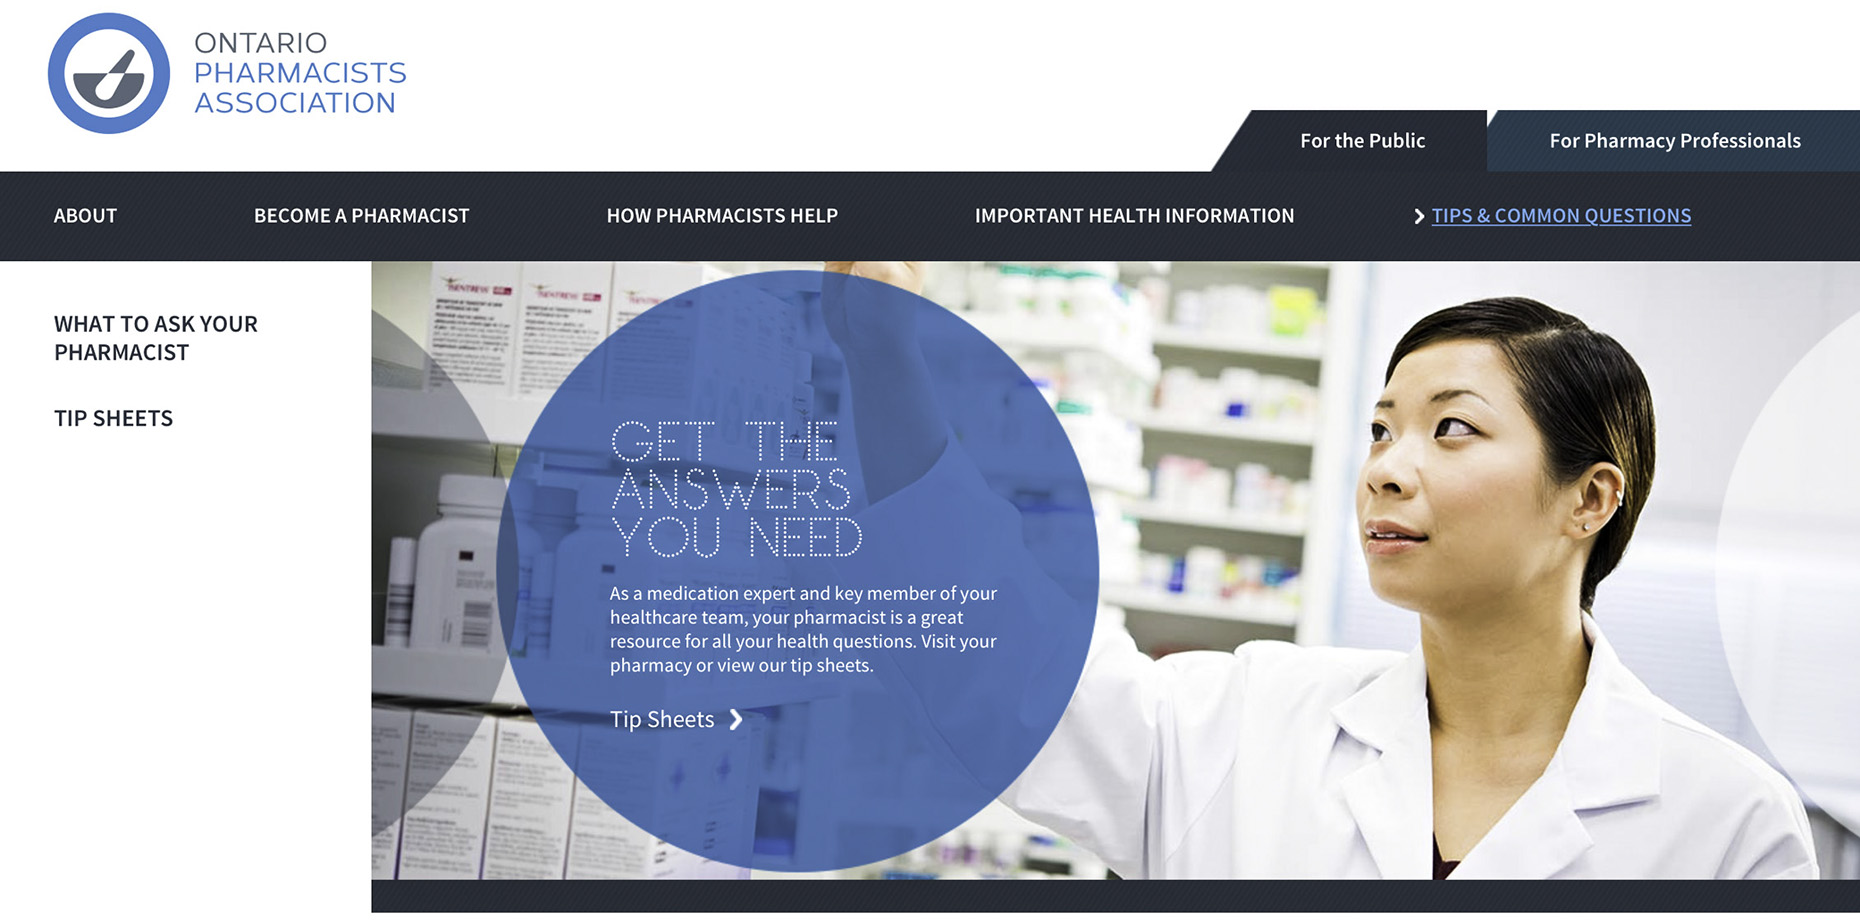 OPA corporate photograph of pharmacist reaching for drug vial on shelf